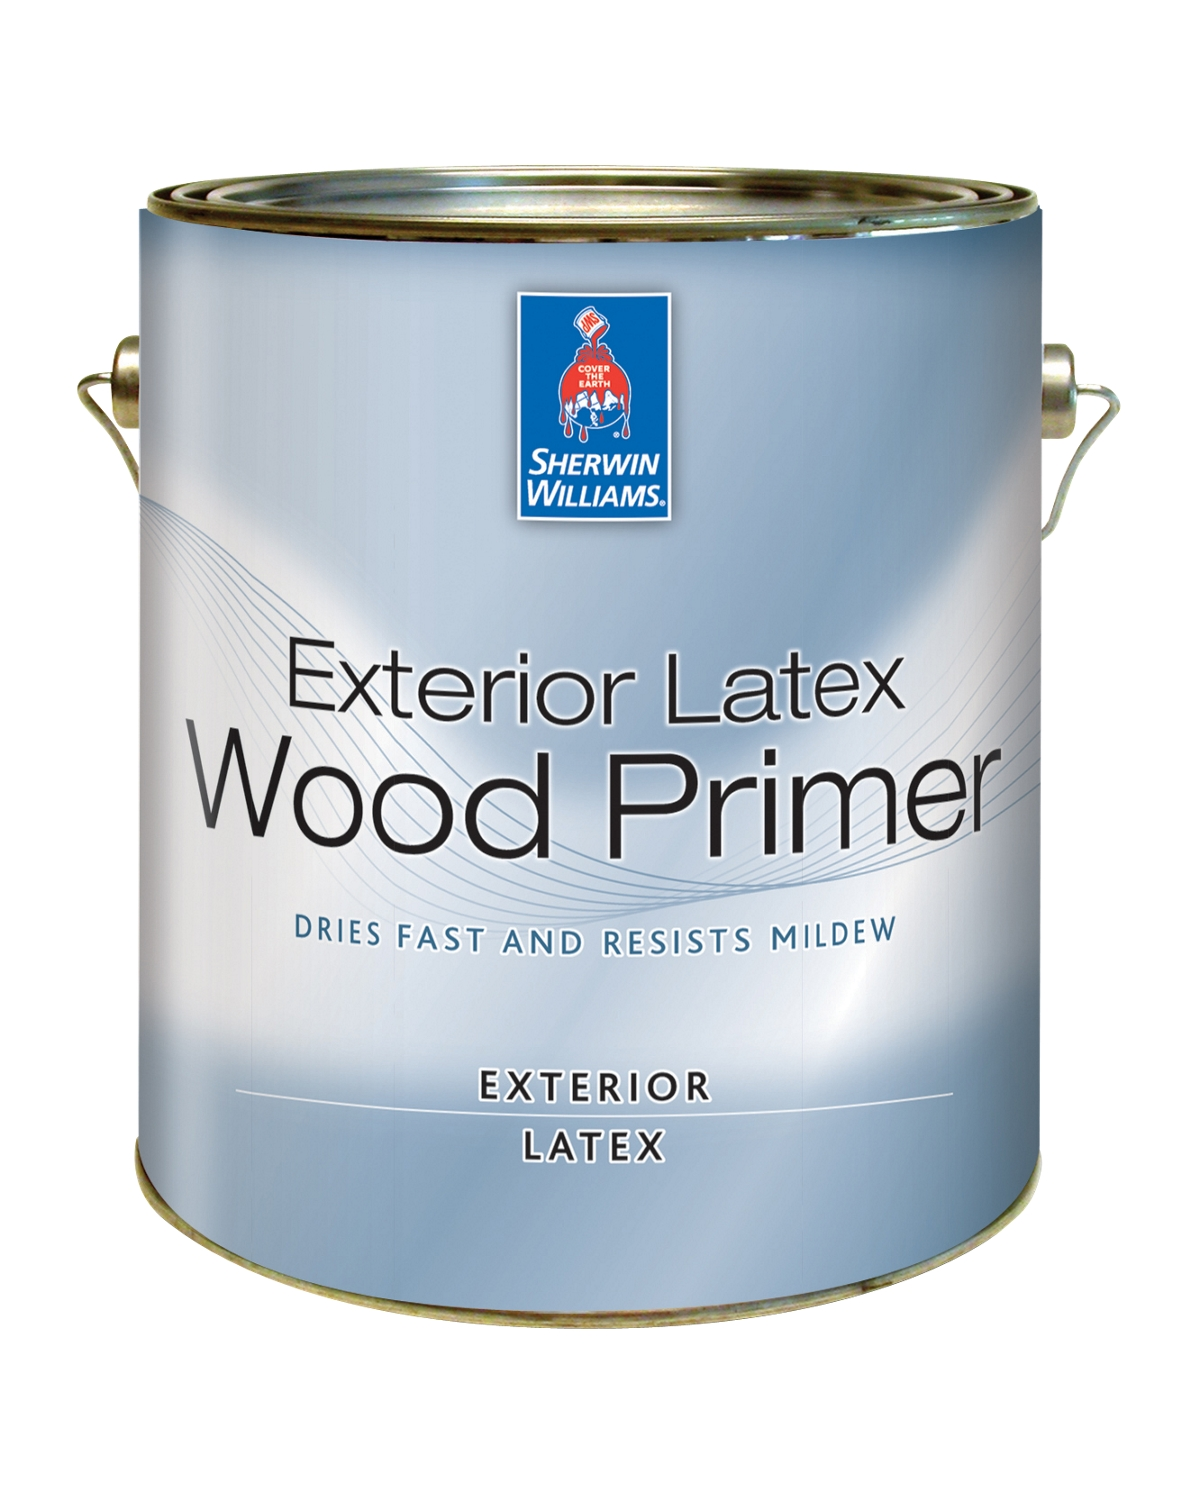 Exterior Latex Wood Primer